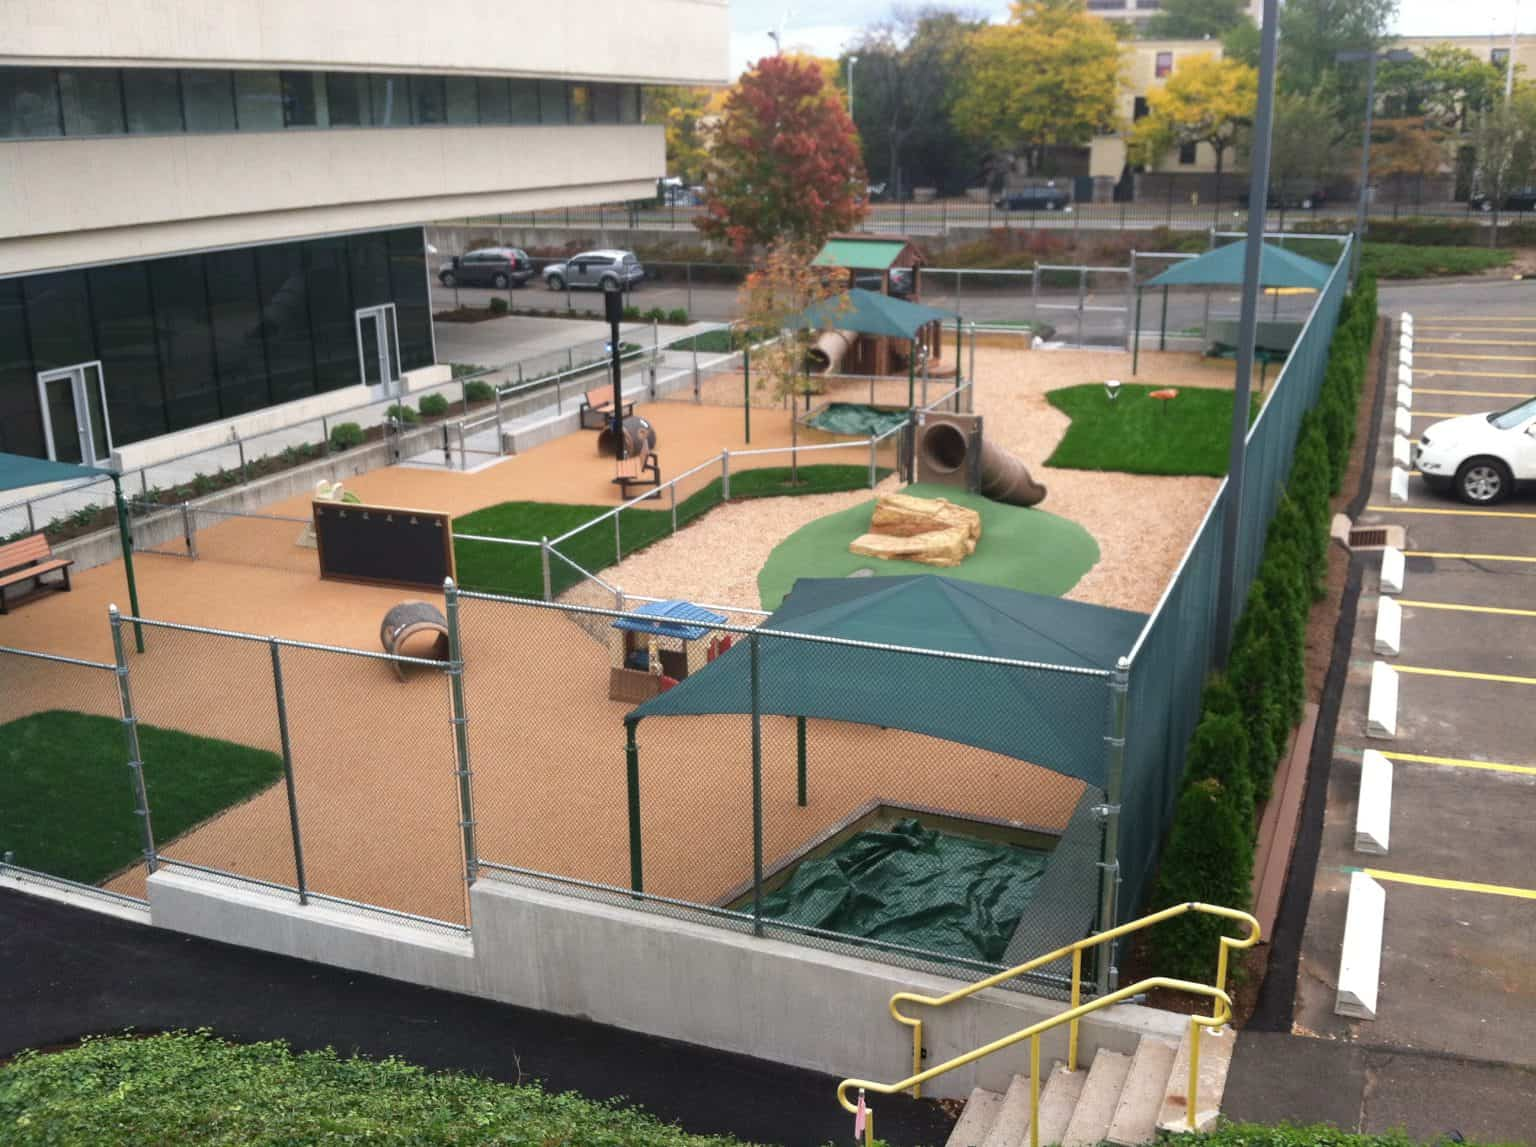 phyllis-bodel-daycare-playground-new-haven-ct_18128612601_o-1536x1147